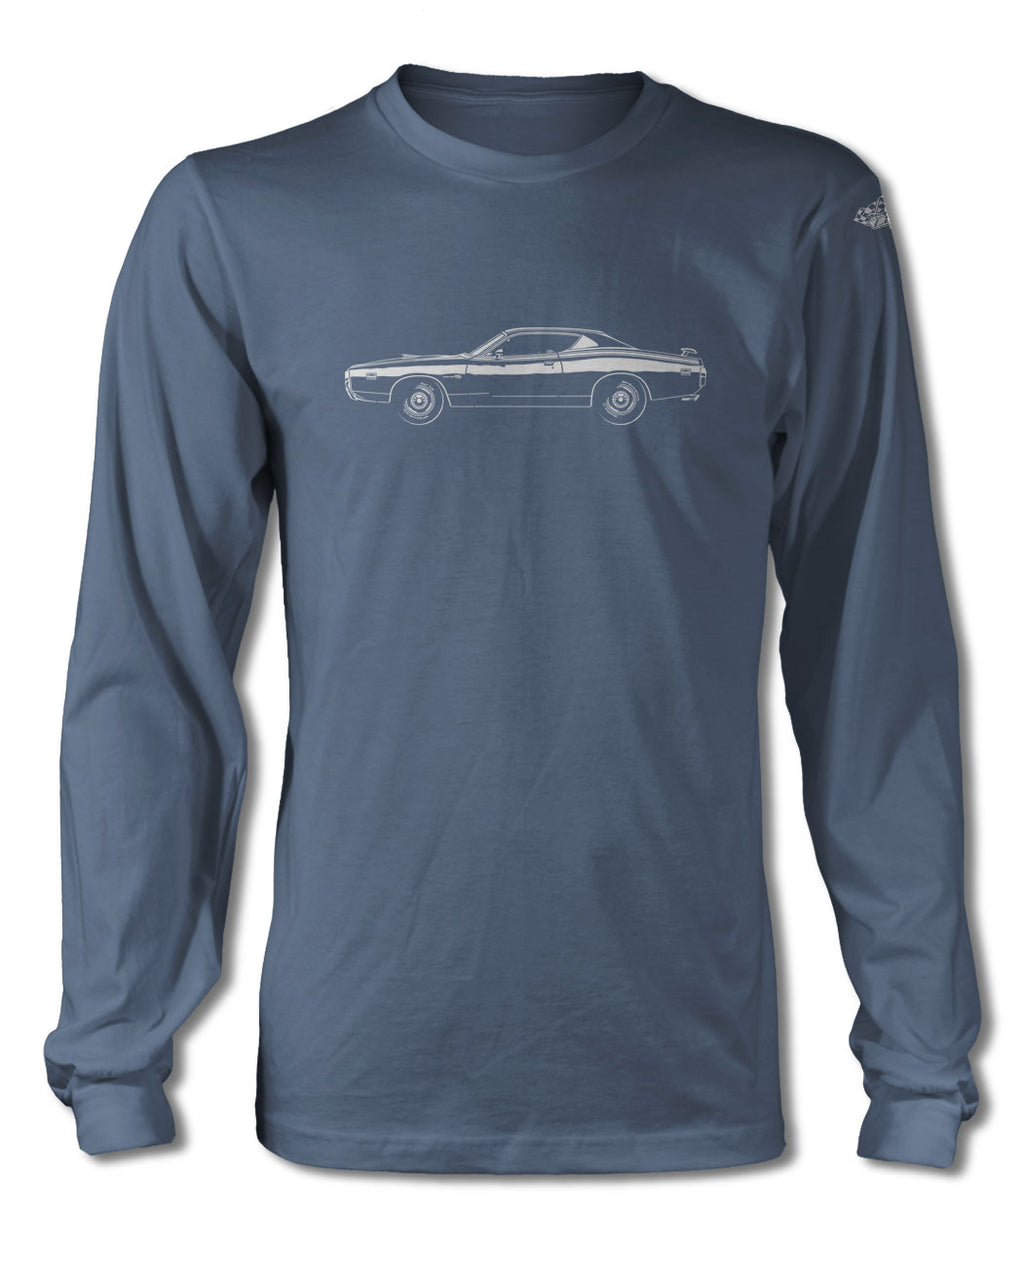 1971 Dodge Charger Super Bee Hardtop T-Shirt - Long Sleeves - Side View